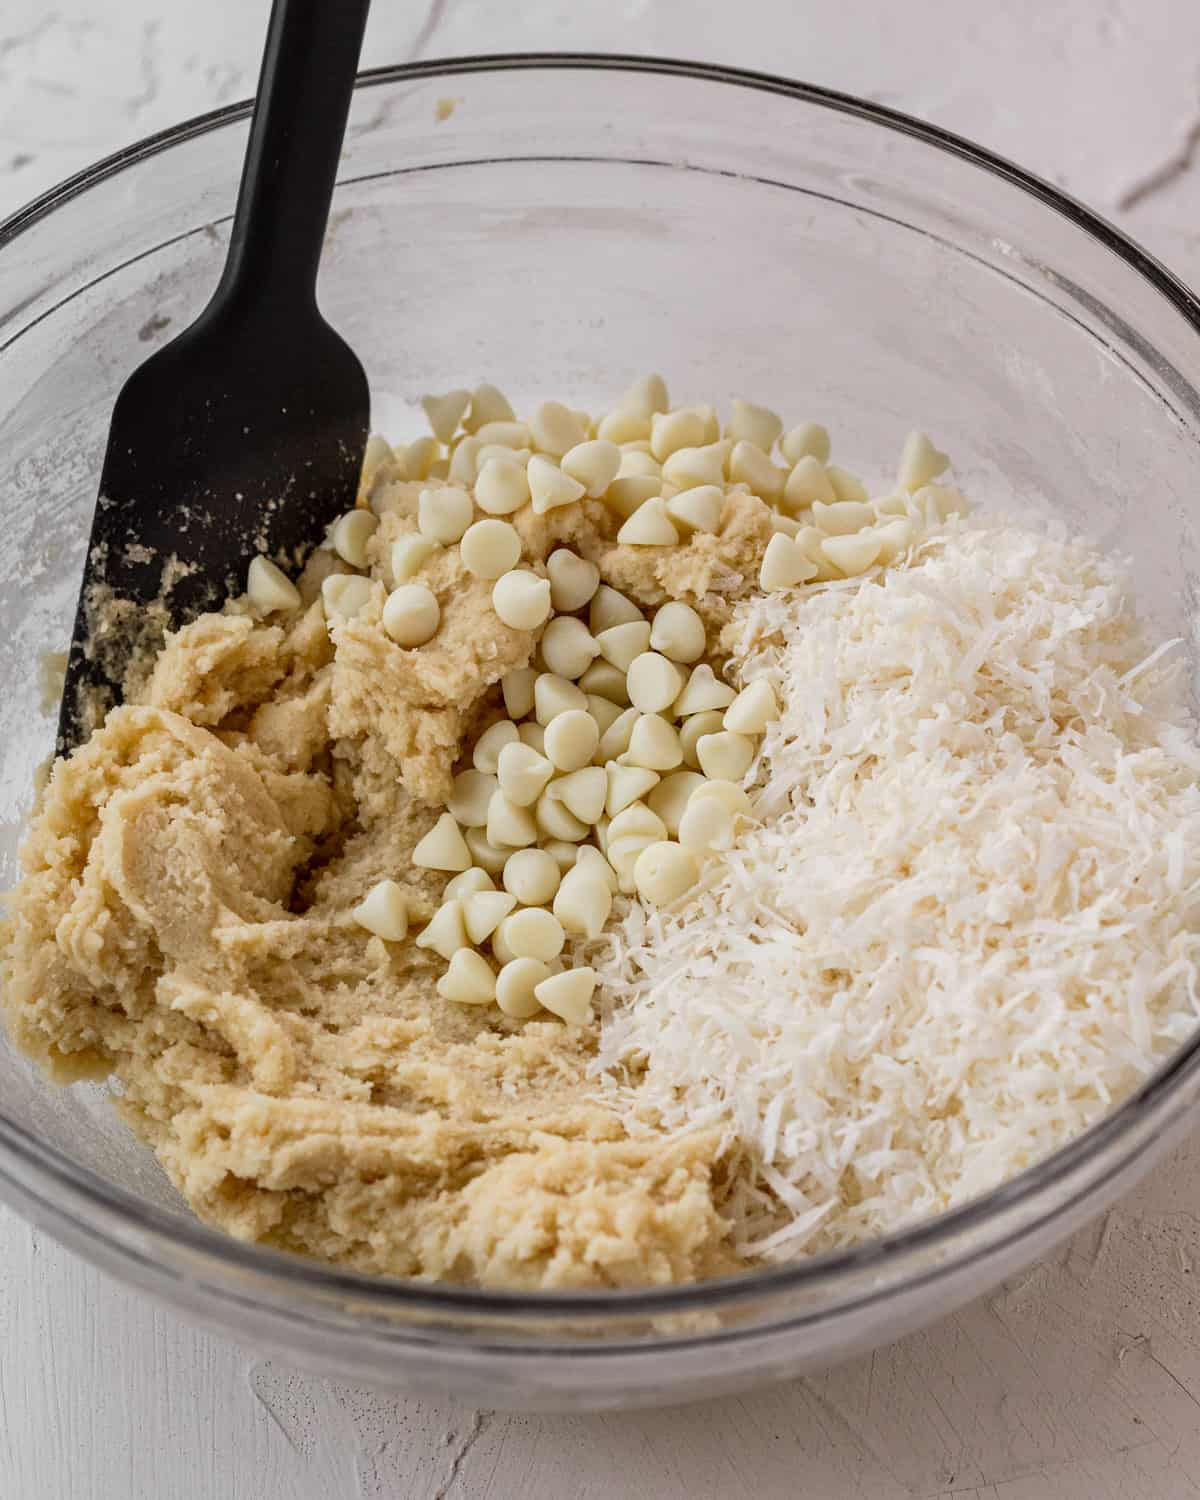 dough with coconut and white chocolate chips being mixed in